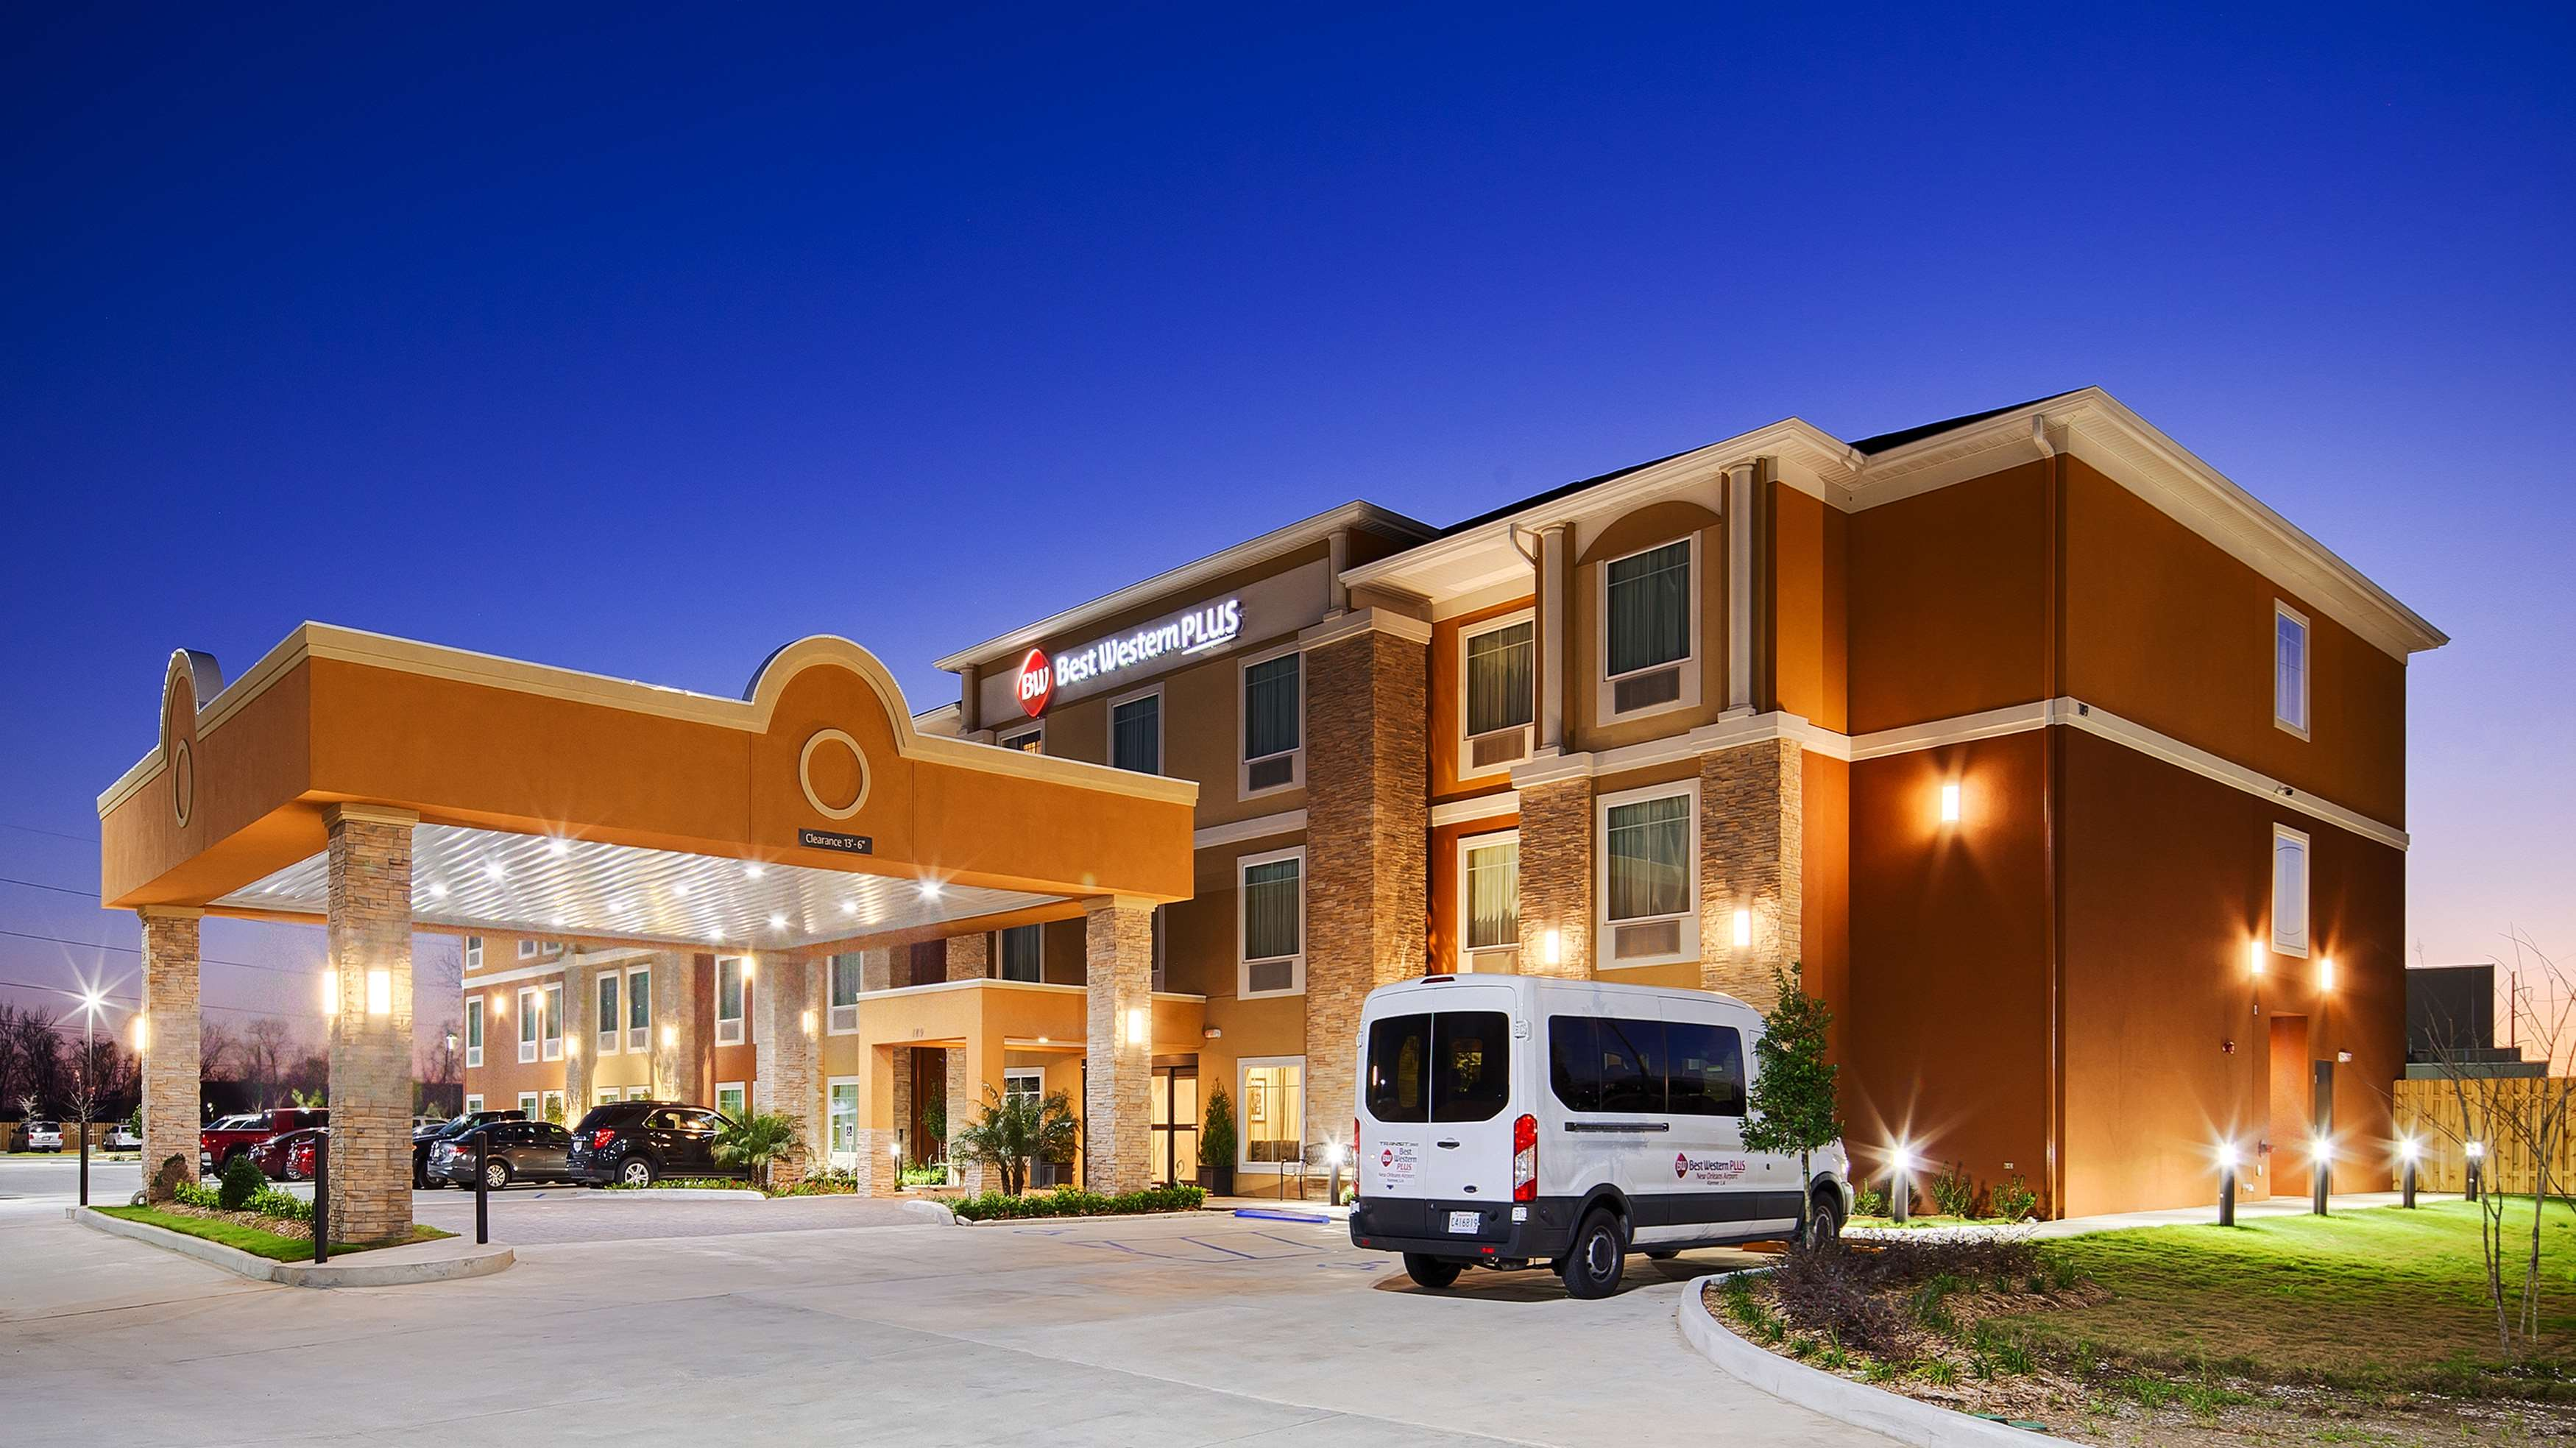 Best western plus new orleans airport hotel coupons near for Modern hotels near me